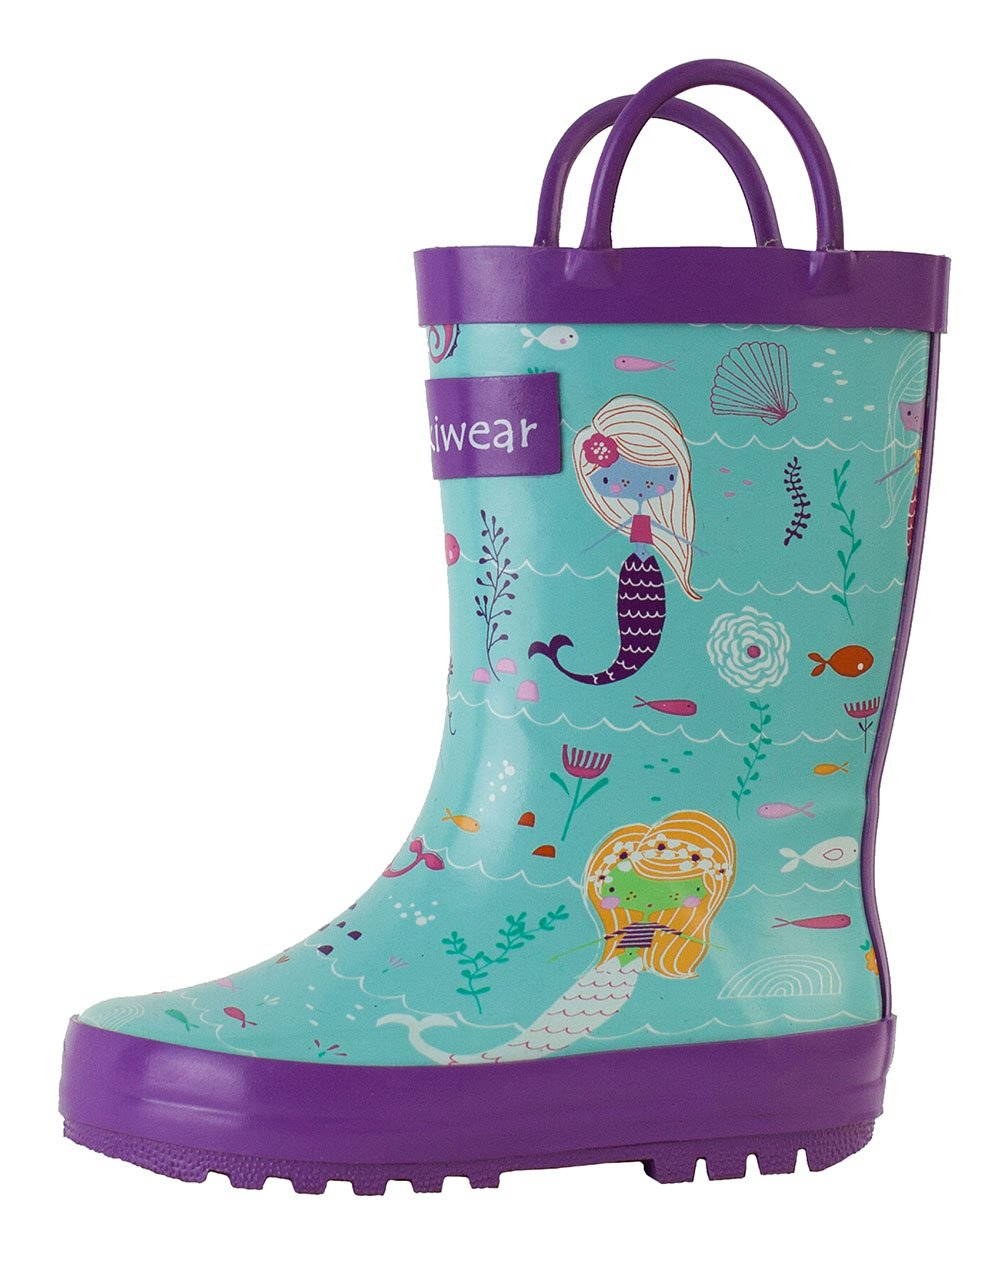 9ec638cb51b The Best Rain Boots for Toddlers to Keep Kids Warm and Dry!